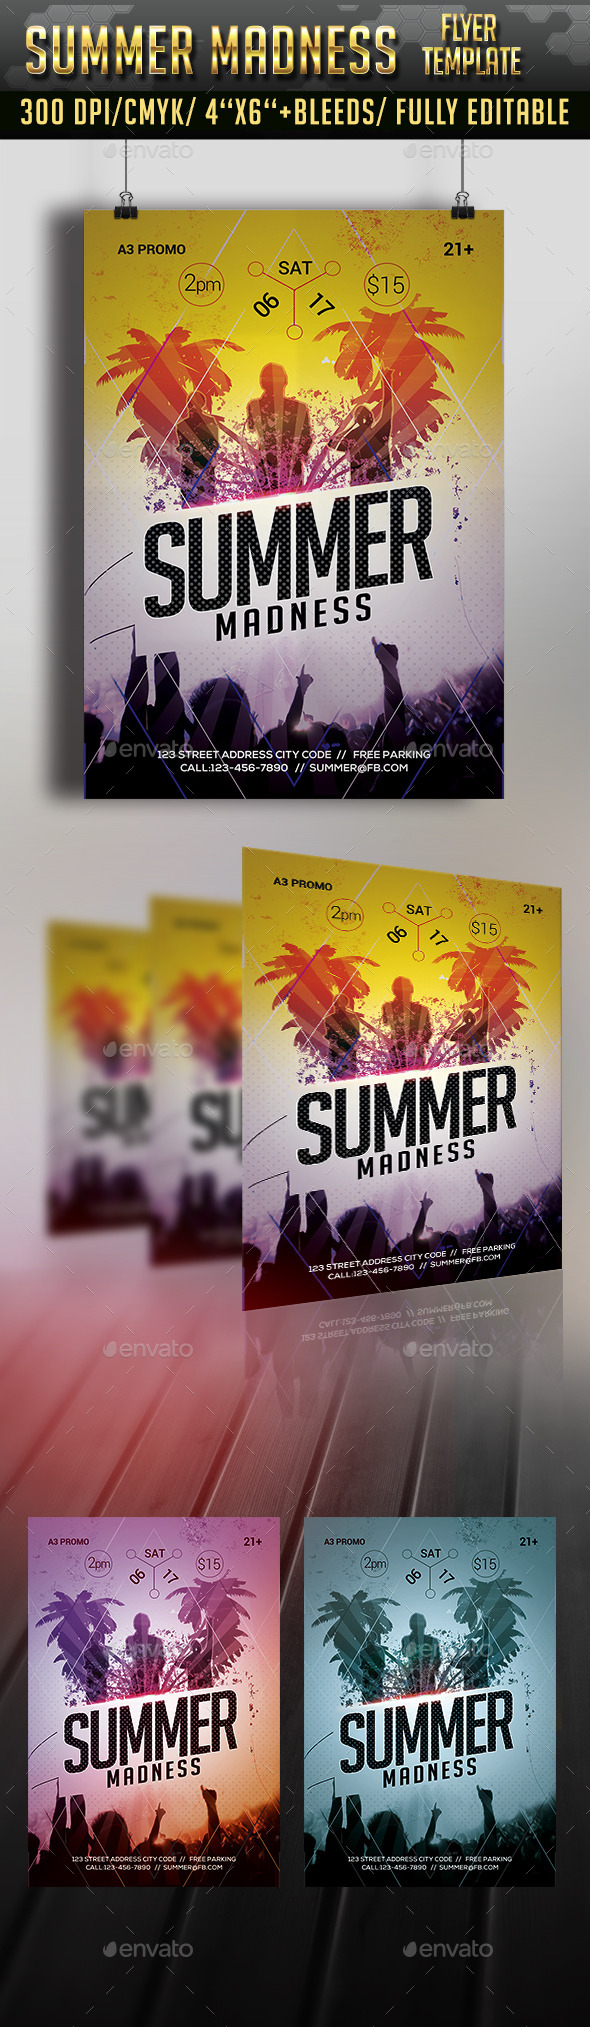 Summer Madness Flyer Template - Clubs & Parties Events